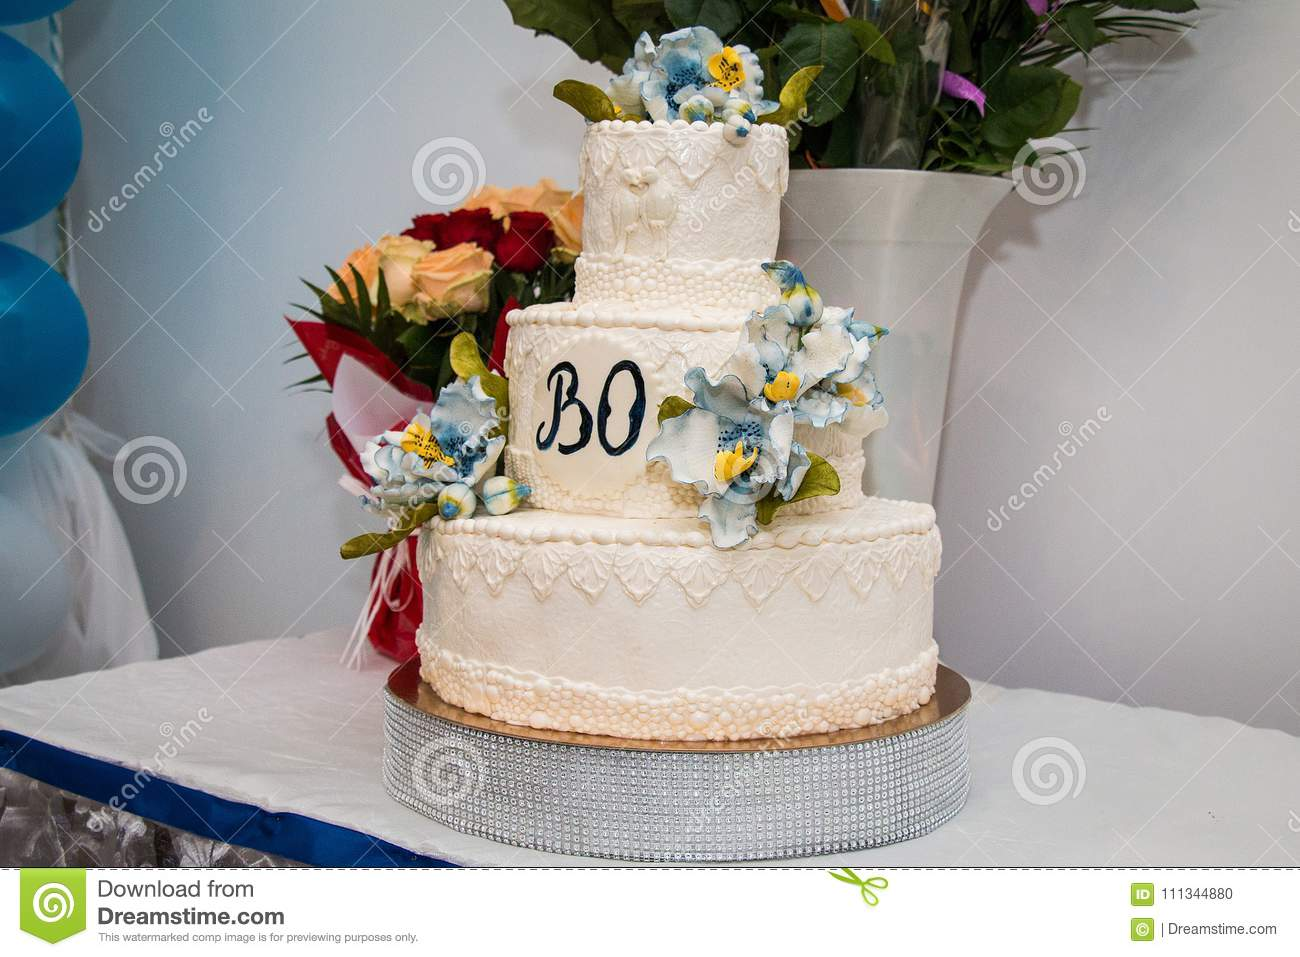 Wedding cake in white and blue colors stock photo image of cakes download comp izmirmasajfo